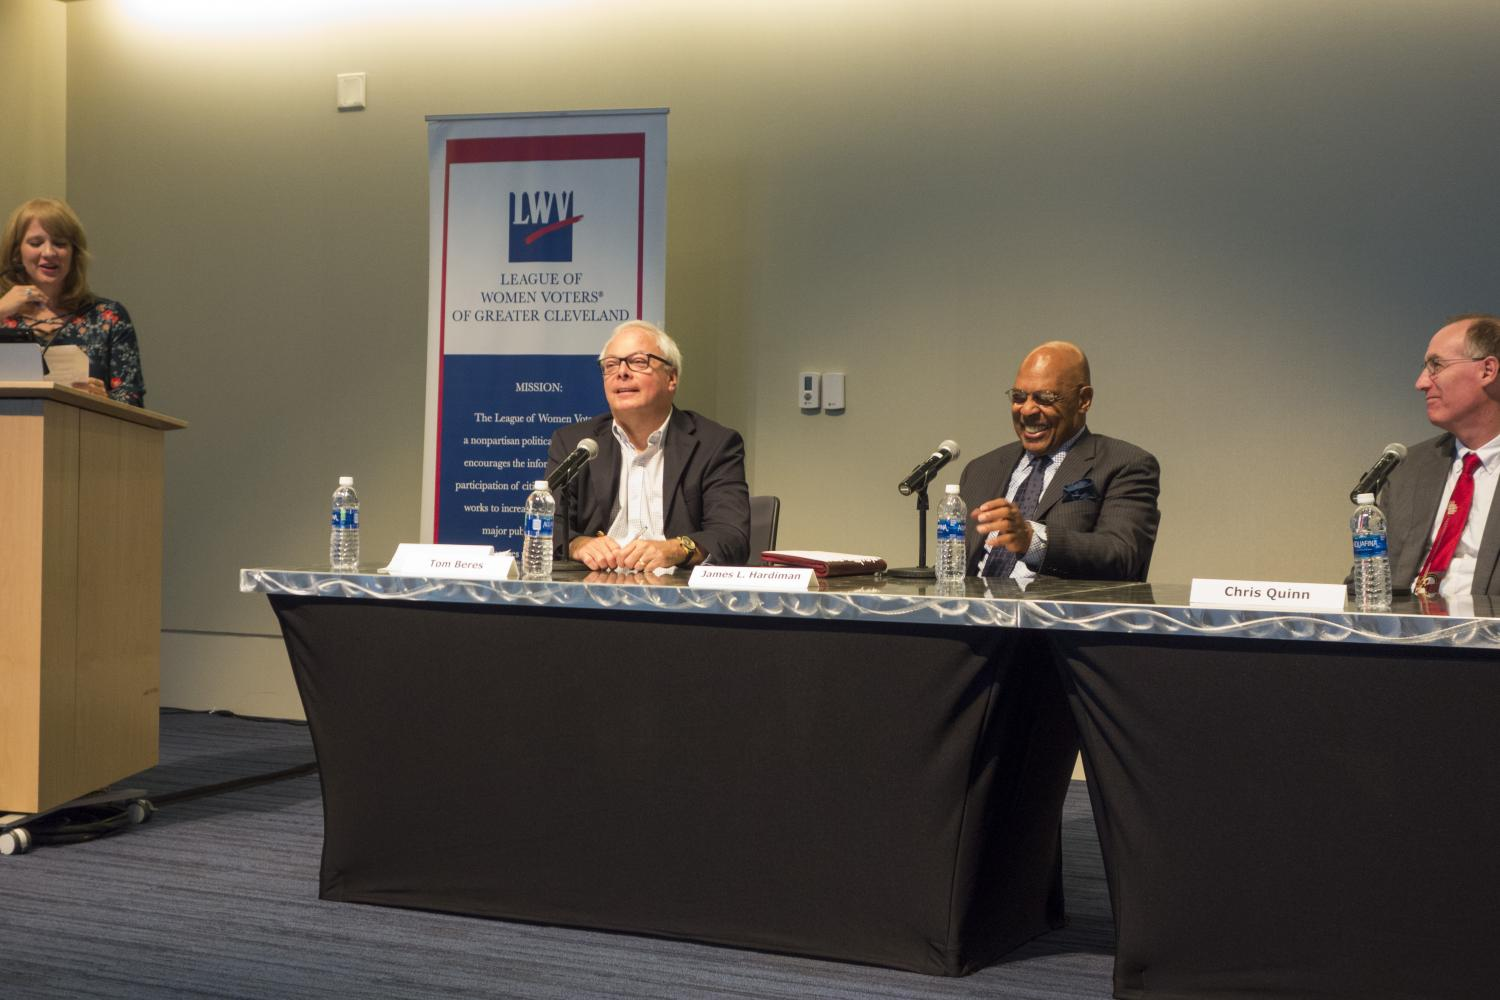 Panelists+visited+CWRU+to+participate+in+a+forum+sponsored+by+the+Siegal+Learning+Center.+They+discussed+the+future+of+Cleveland+and+the+mayoral+elections.